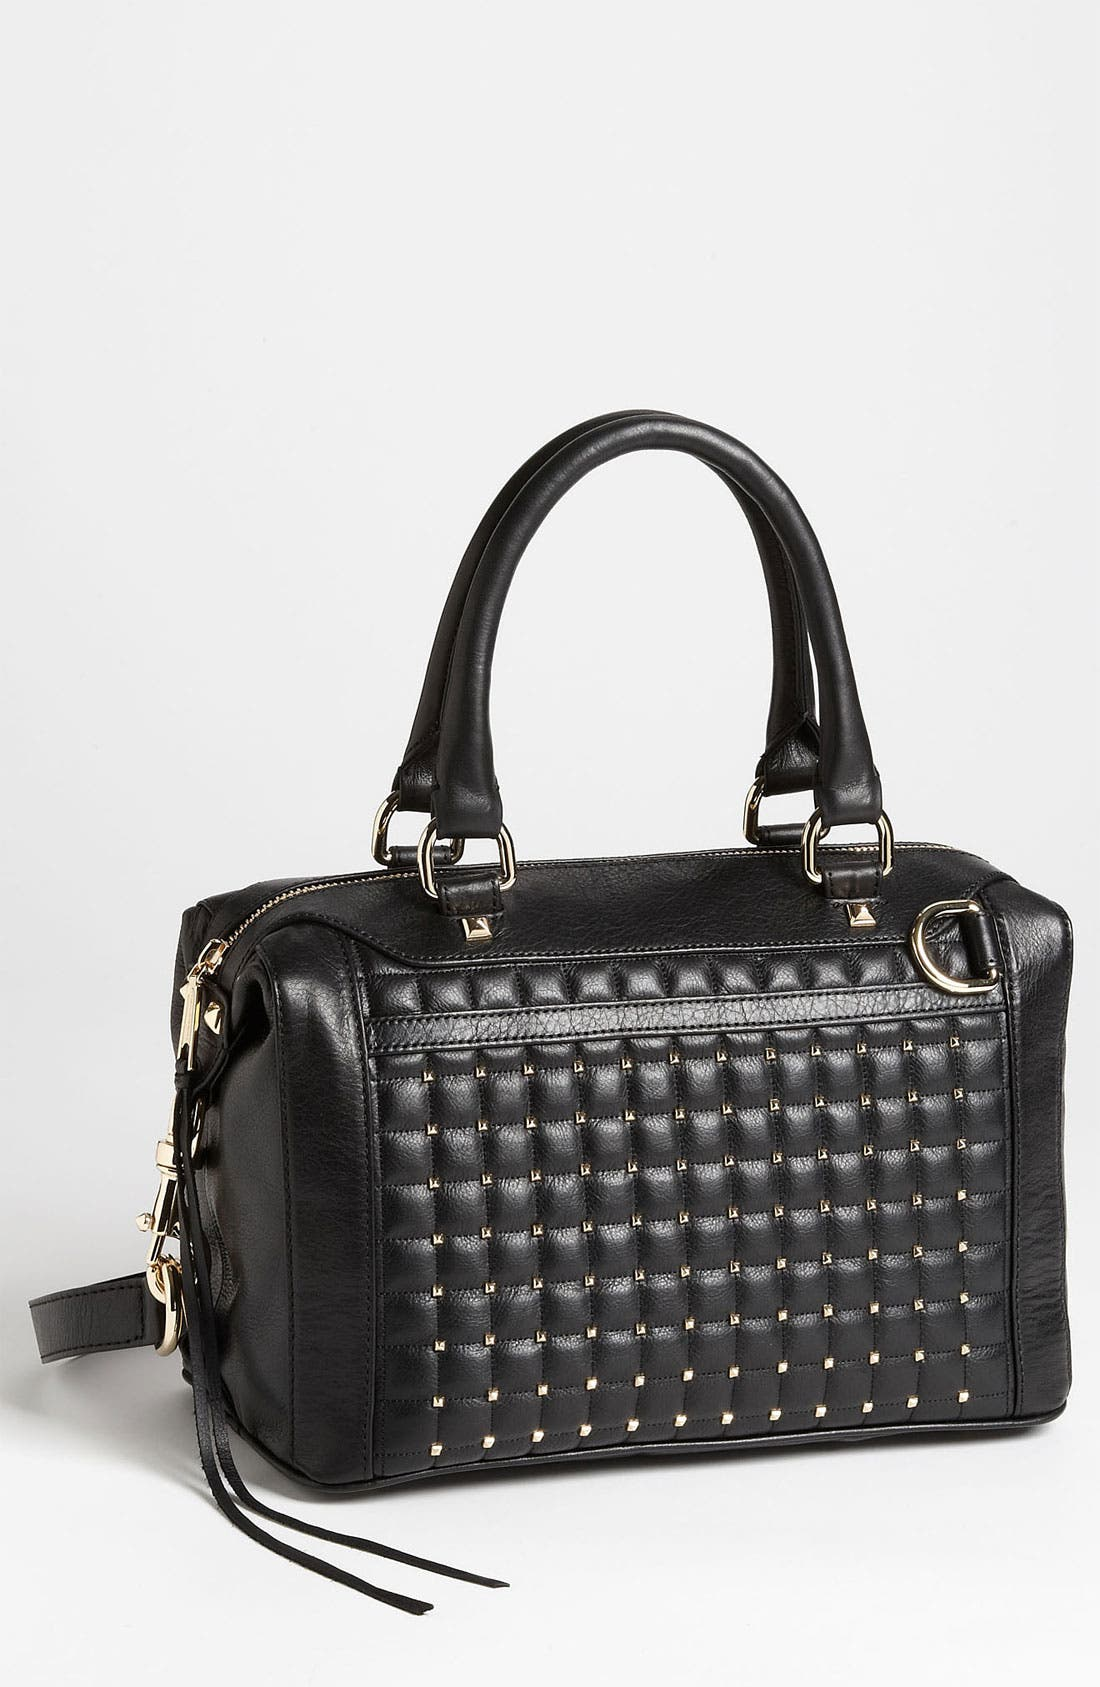 Alternate Image 1 Selected - Rebecca Minkoff 'MAB - Mini' Pyramid Stud Satchel